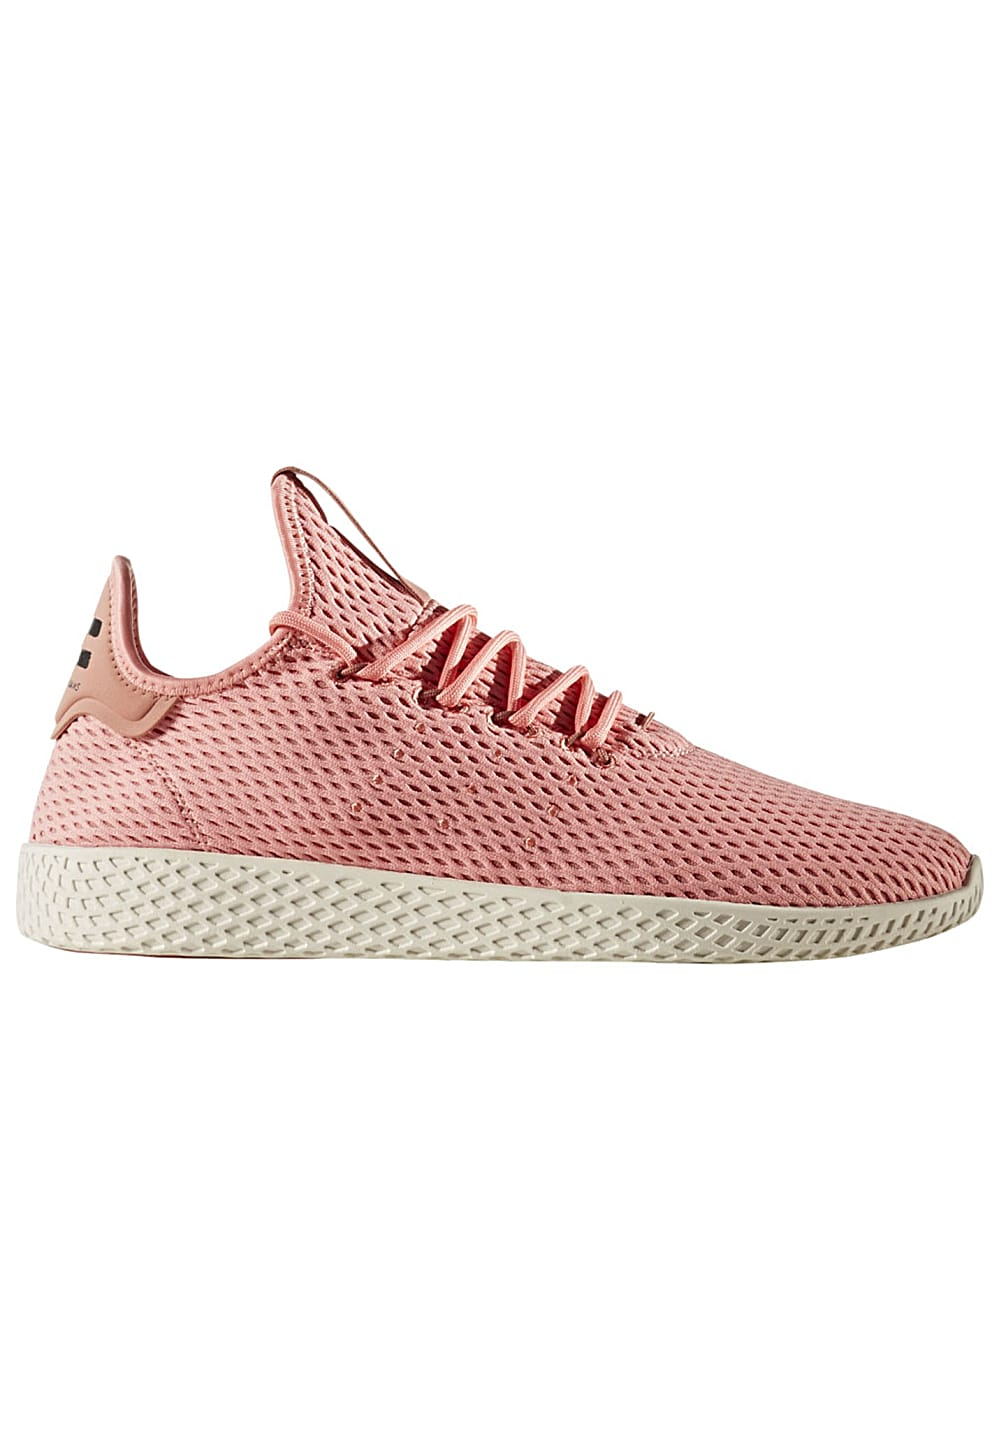 Originals Pink Adidas Williams Pharrell Hu Tennis Sneaker eHE2WID9Y